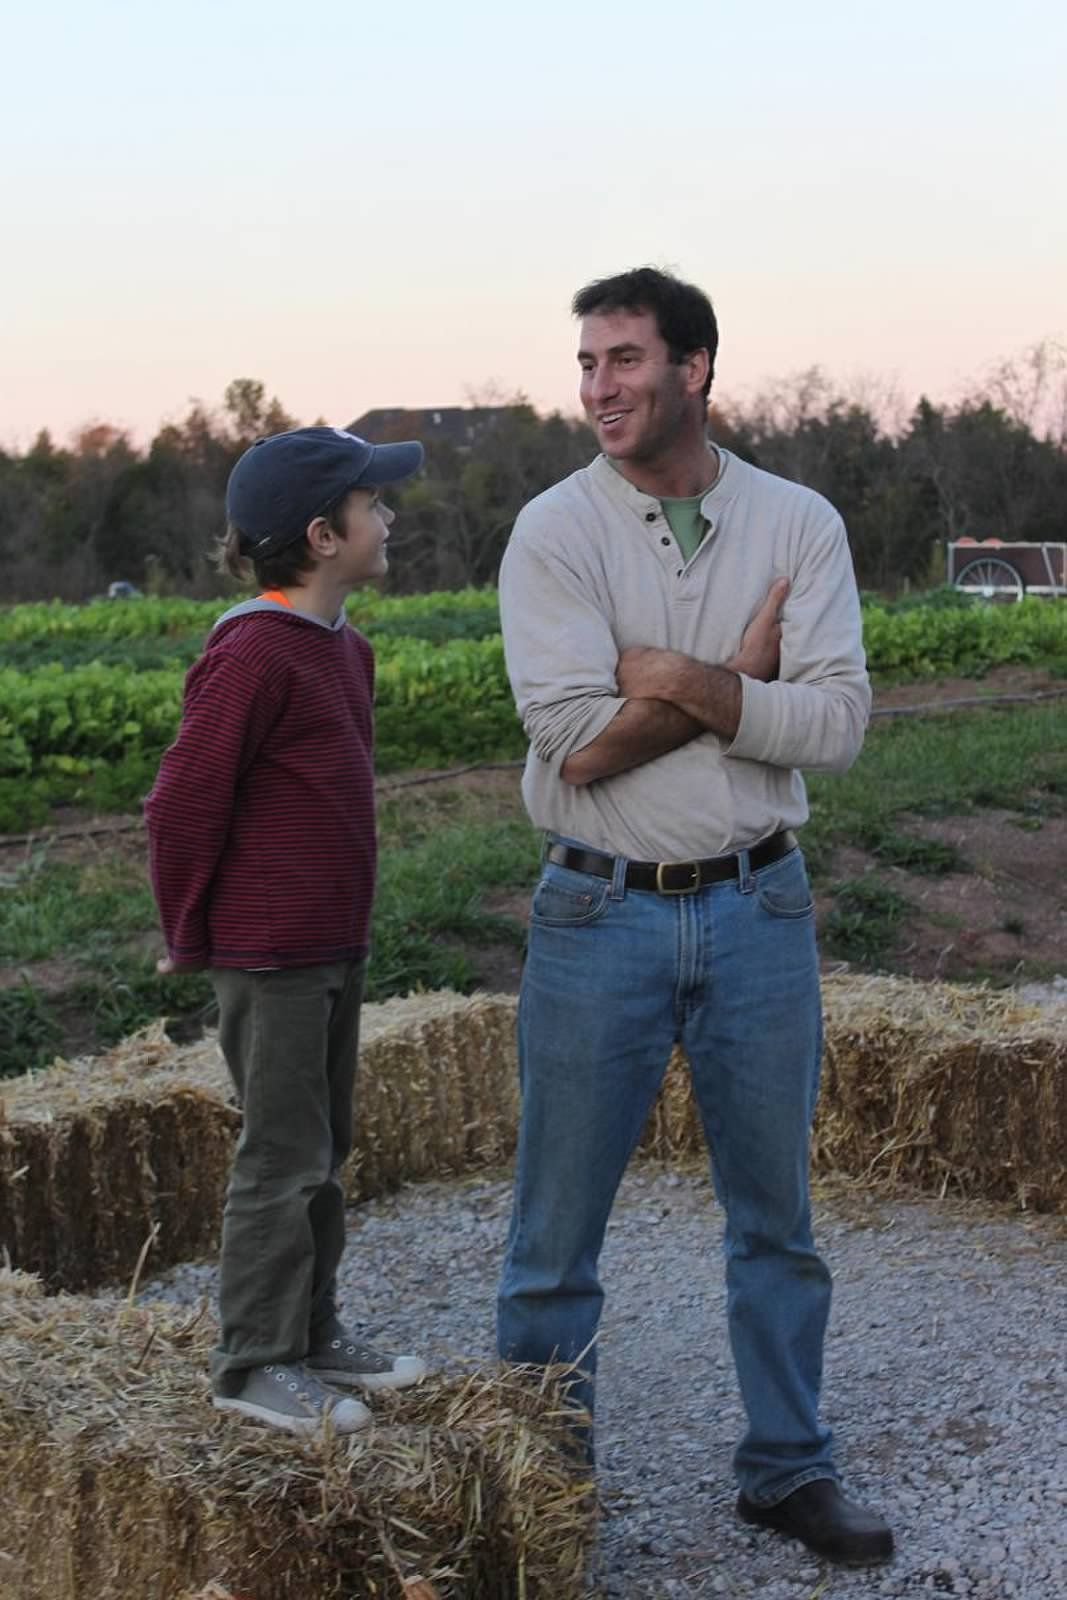 Farmer Mike teaching a young boy the ropes of farming...Farm potluck Fall 2012